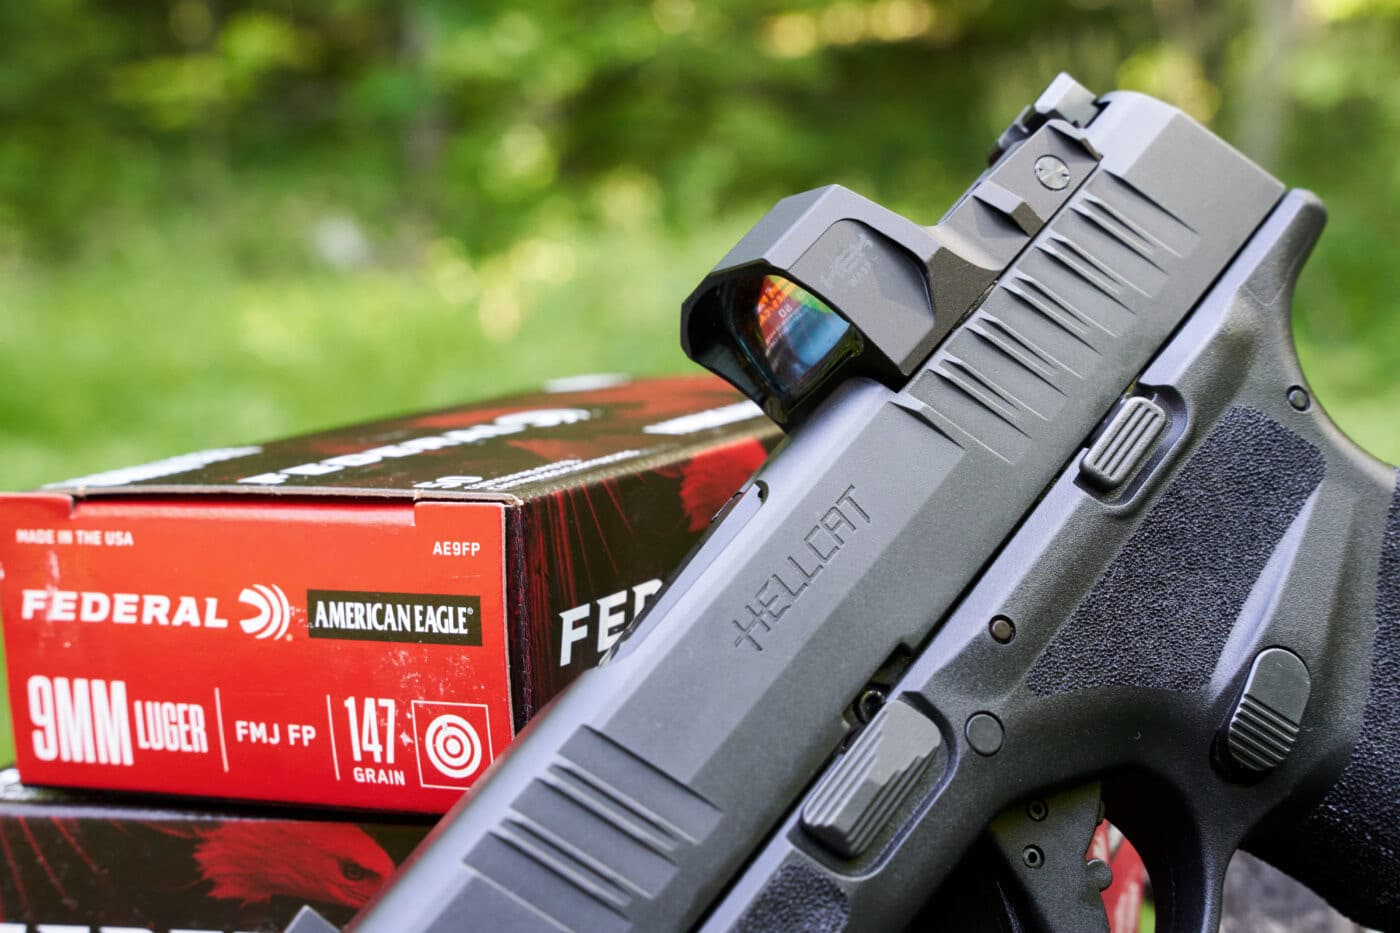 HEX Wasp red dot sight on Hellcat pistol next to ammo